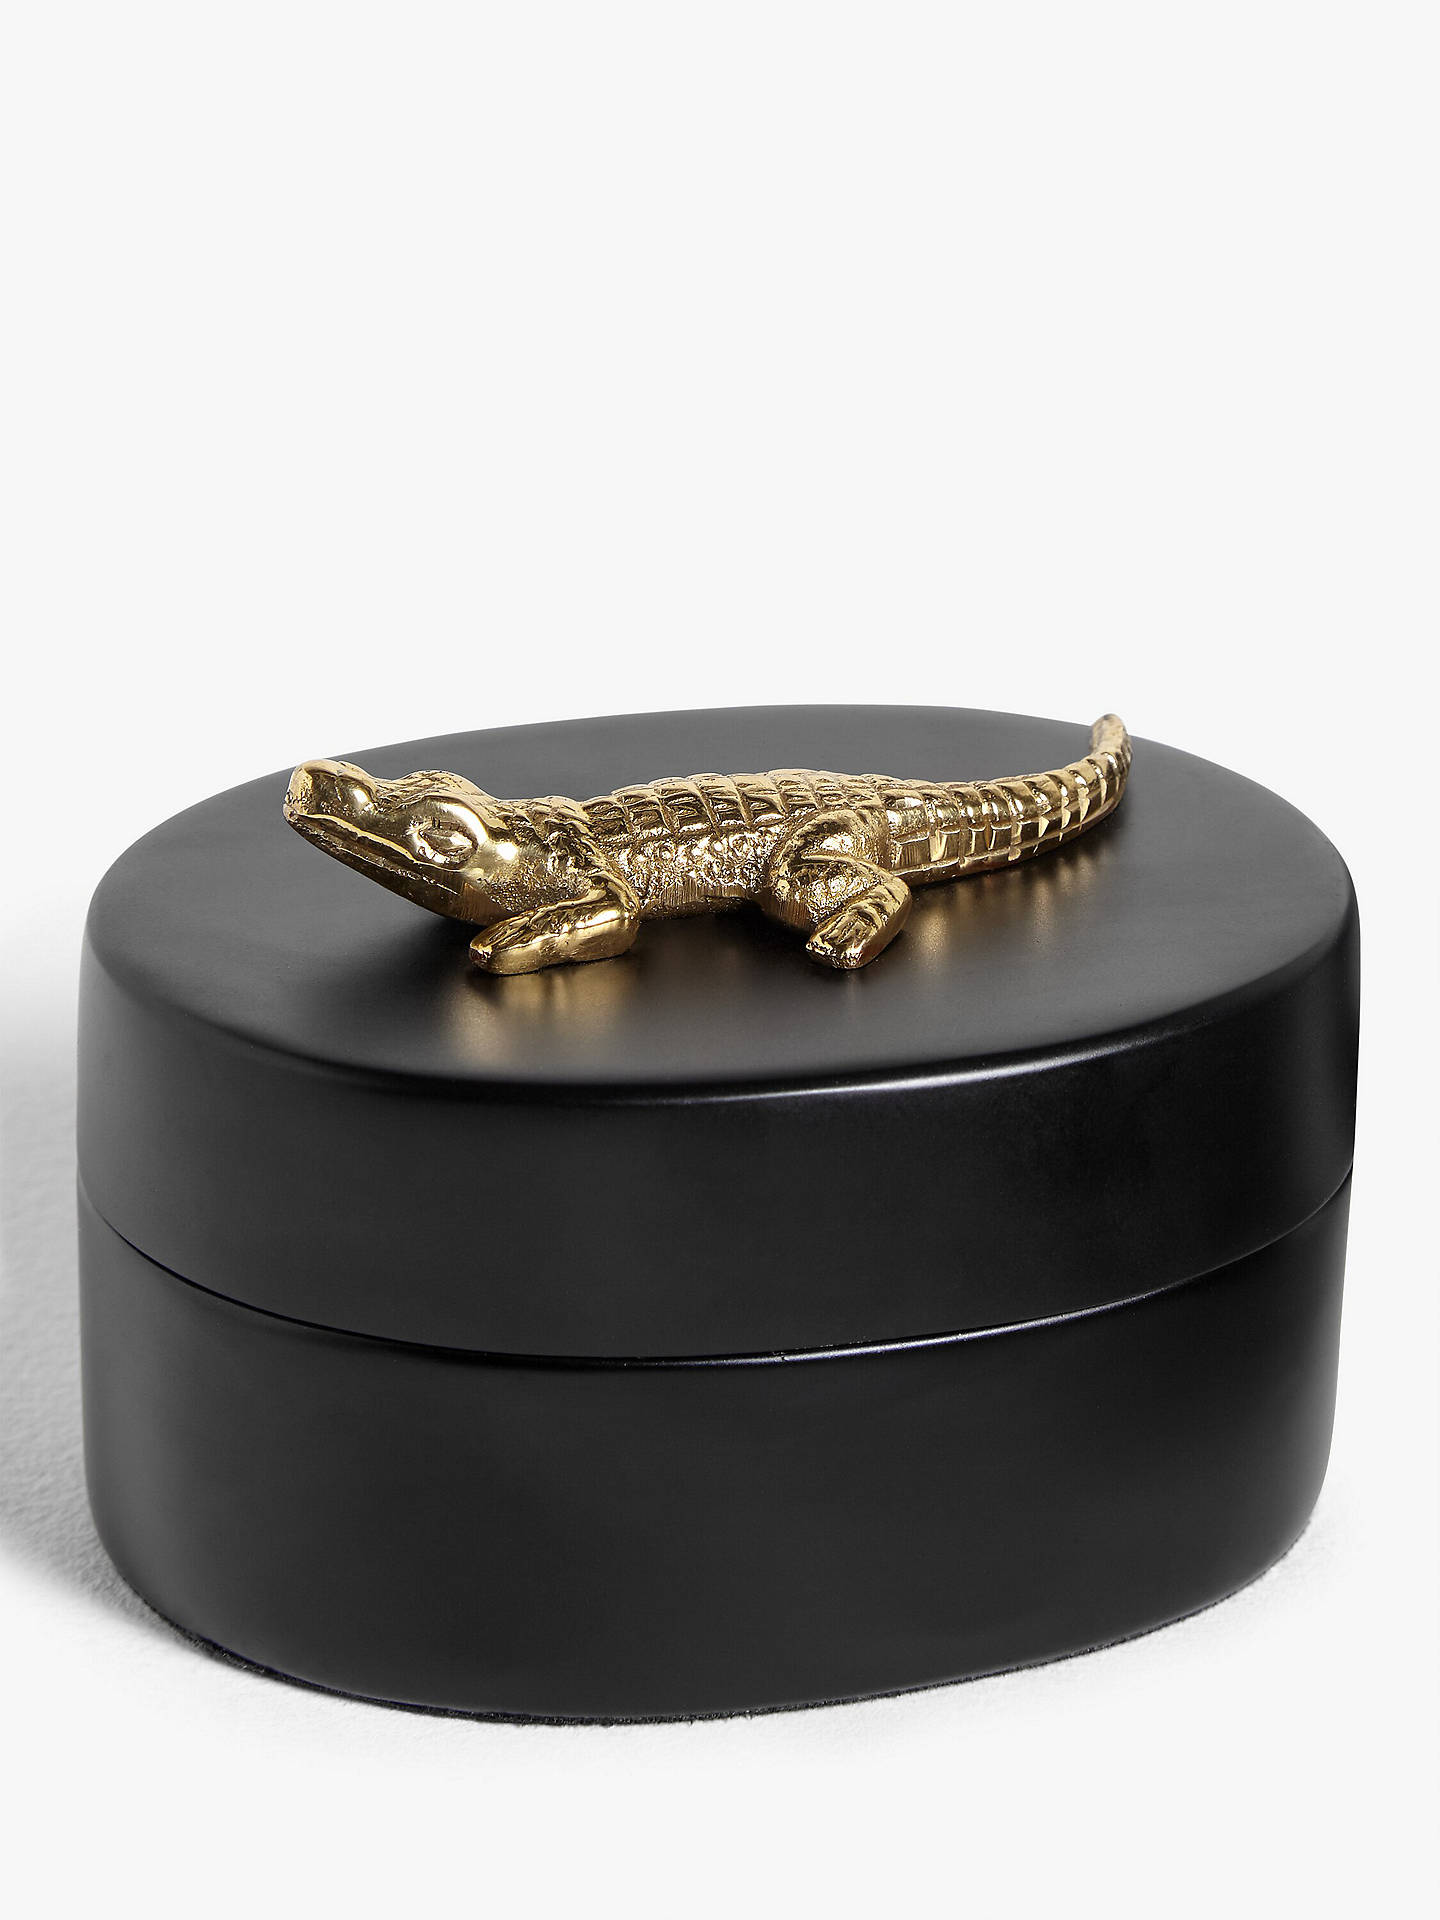 Buy John Lewis & Partners Decorative Alligator Box Online at johnlewis.com